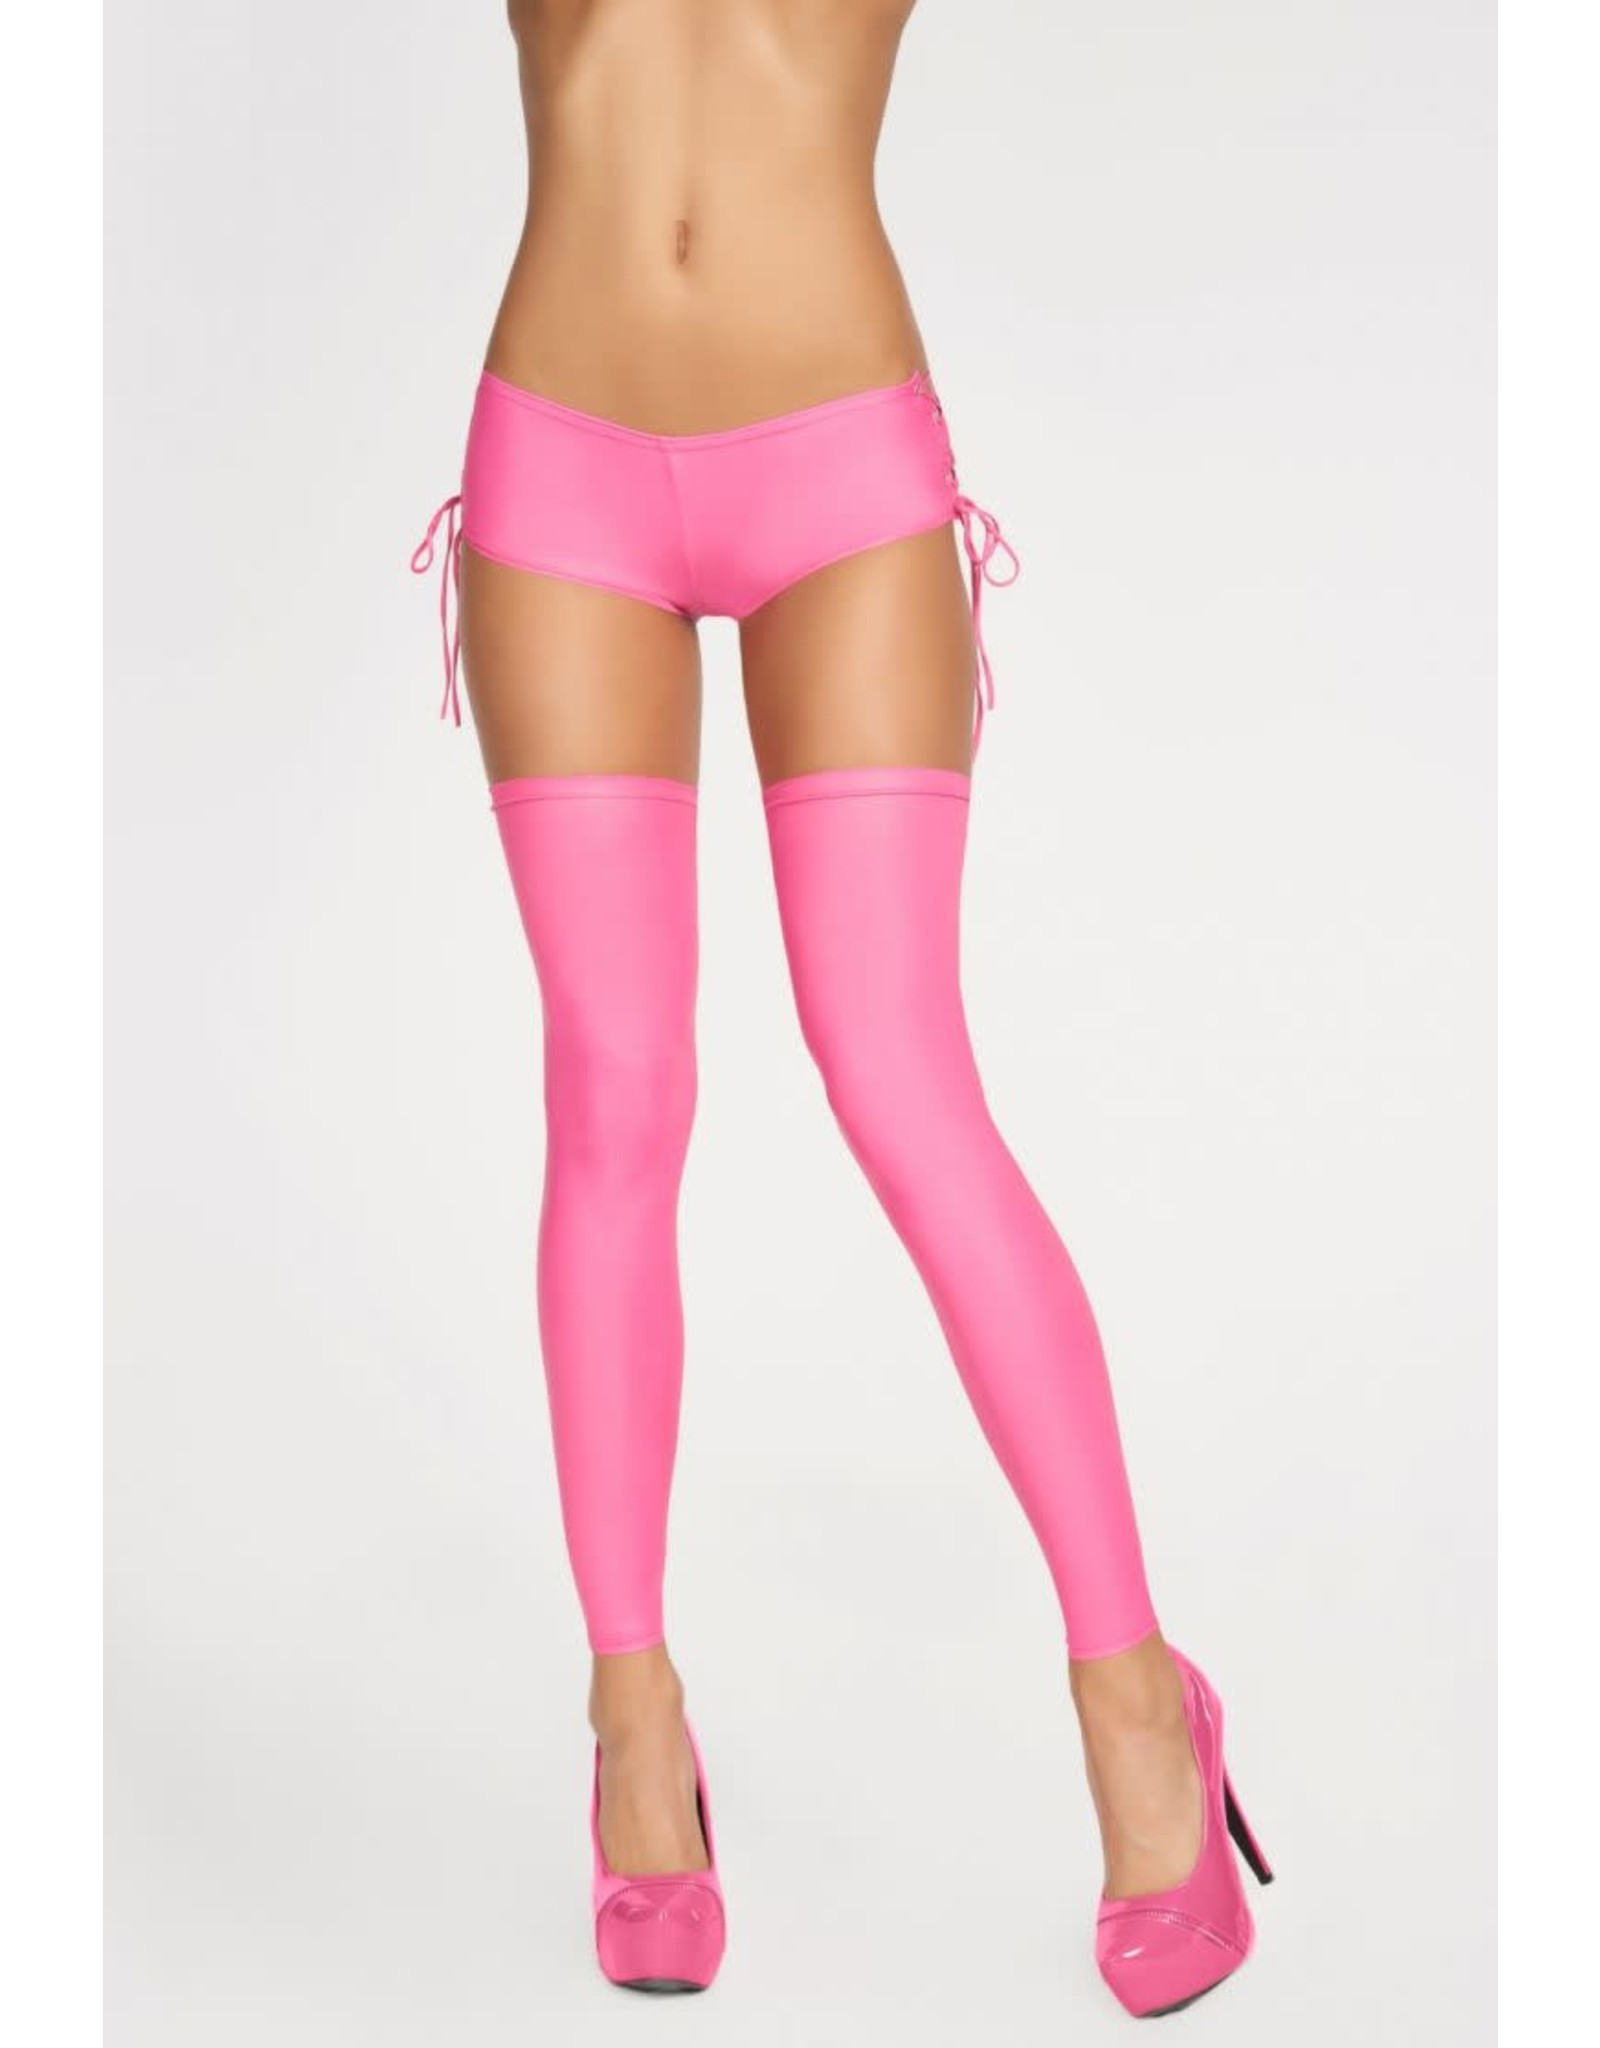 7 HEAVEN - SEXY STOCKINGS WITH LACING AT THE BACK - SMALL/MEDIUM